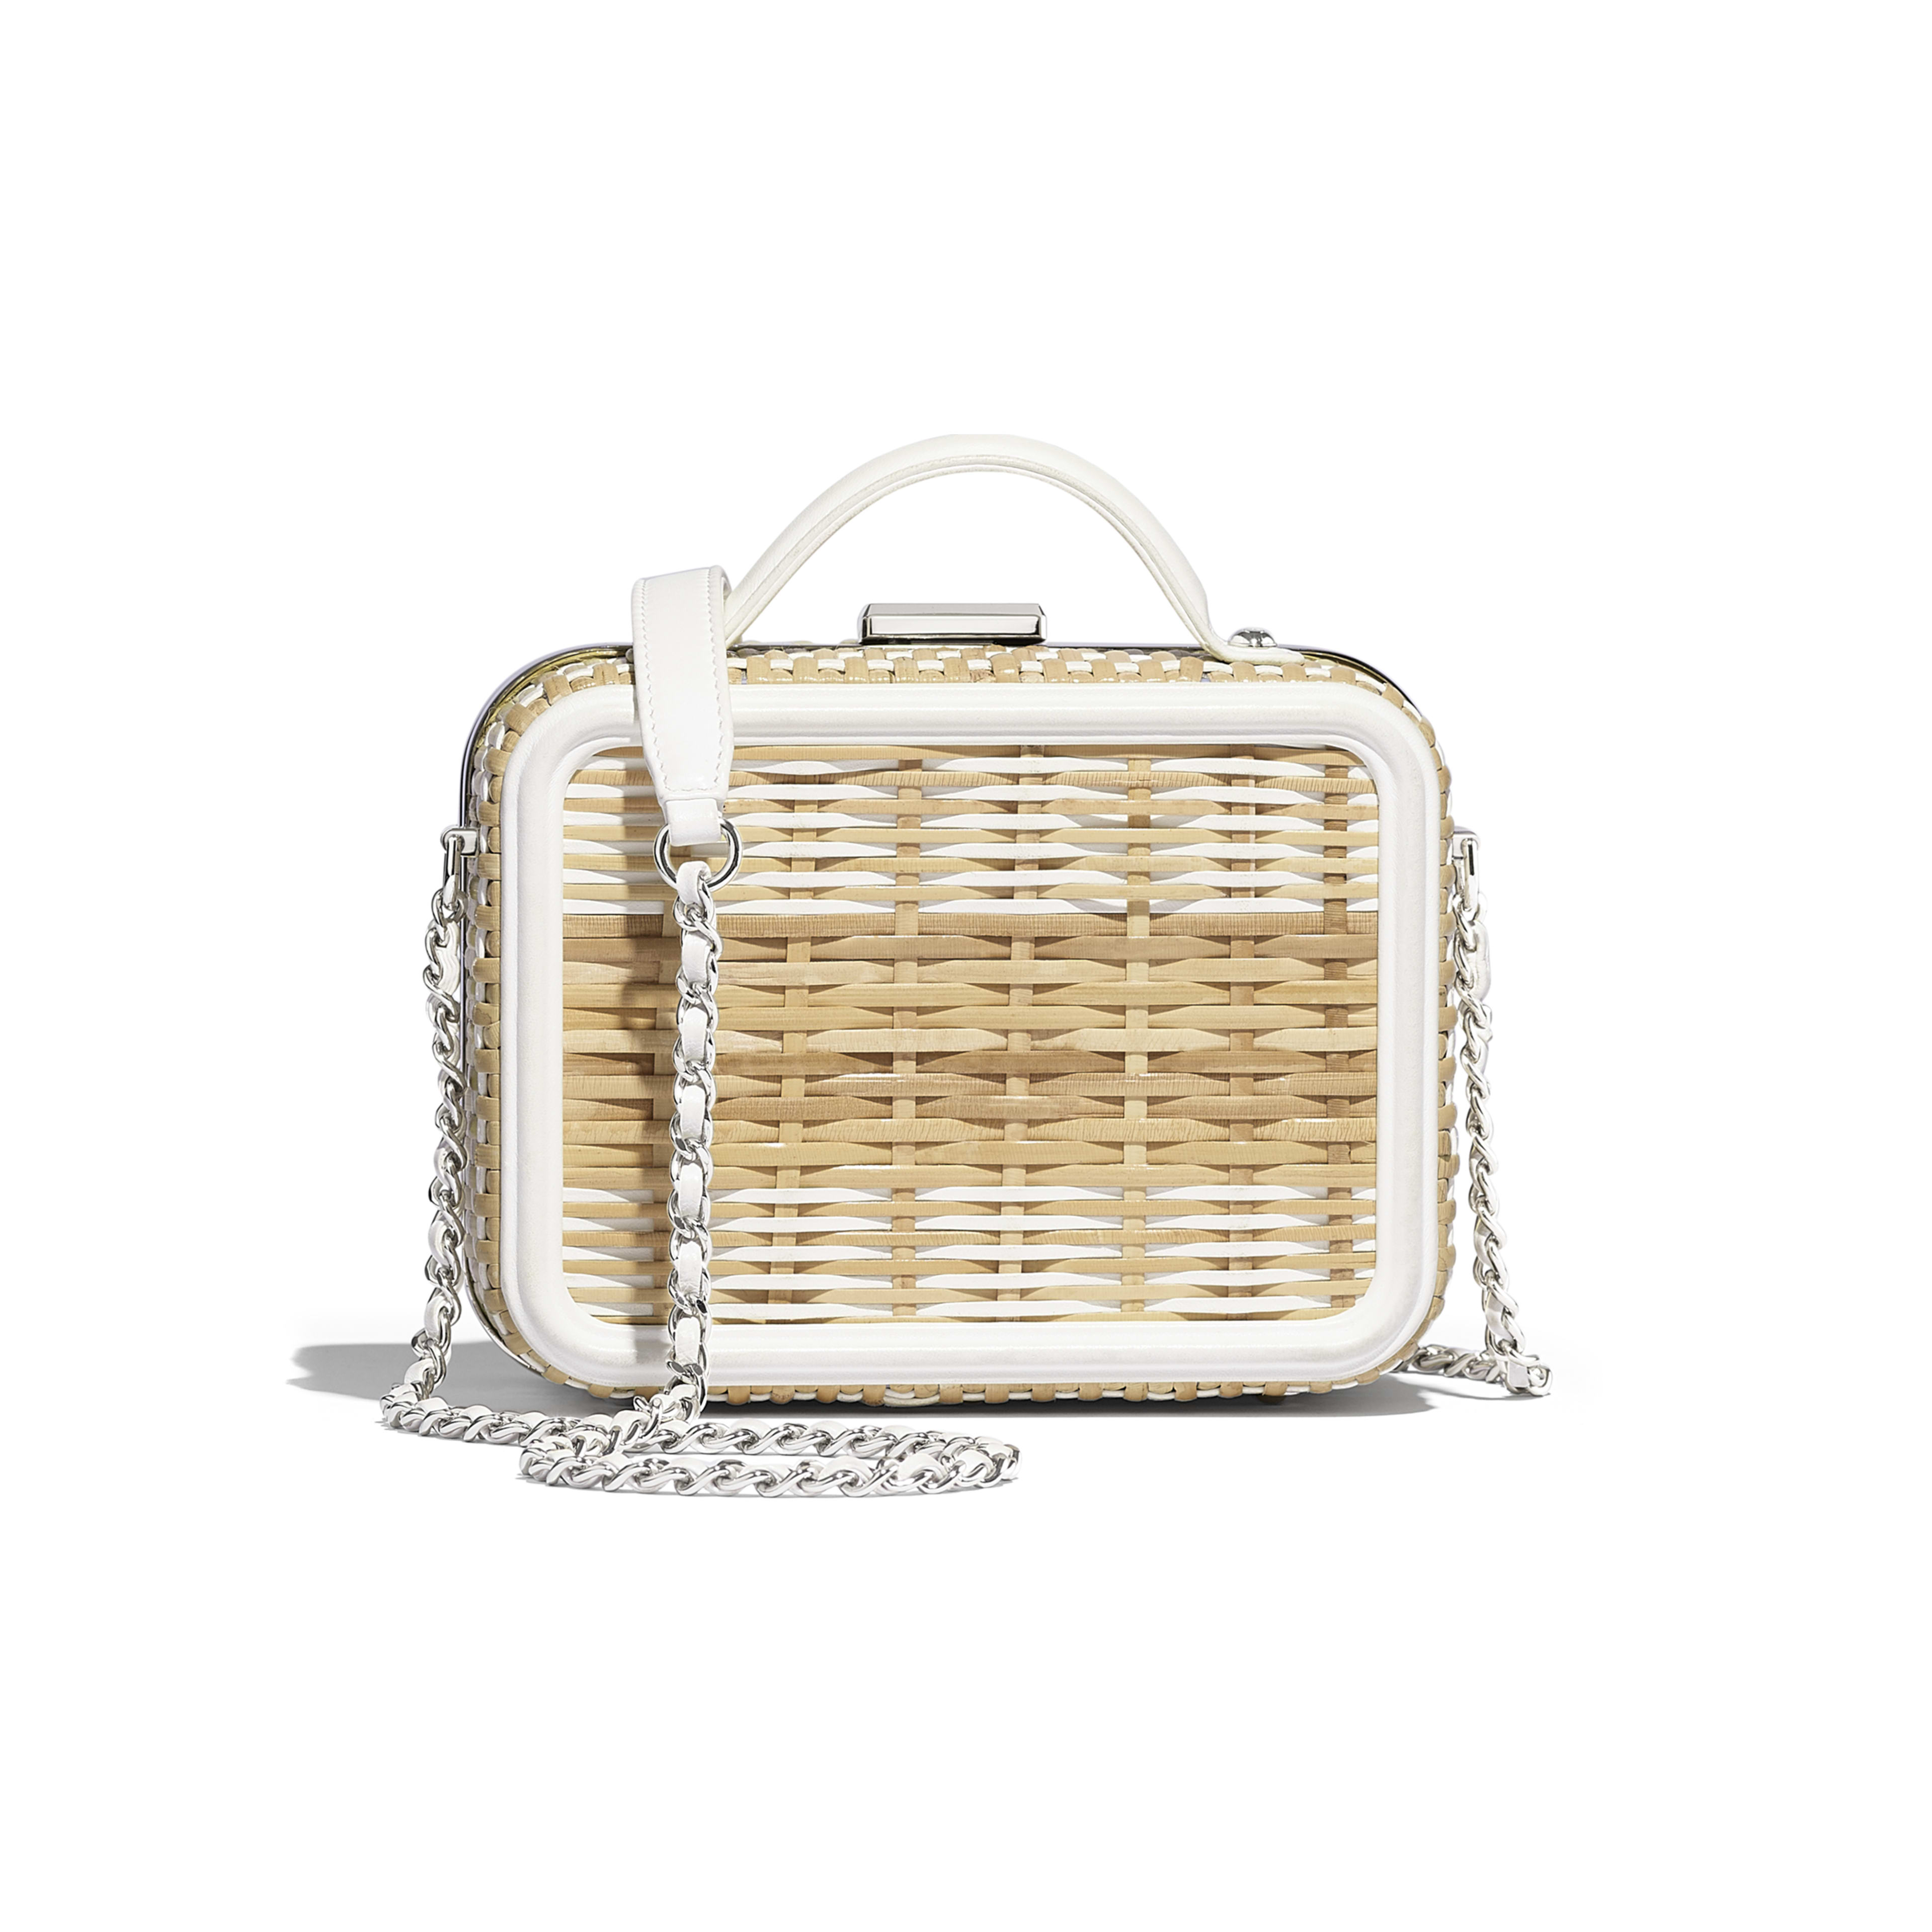 Small Vanity Case - Beige & White - Rattan, Calfskin & Silver-Tone Metal - Alternative view - see full sized version